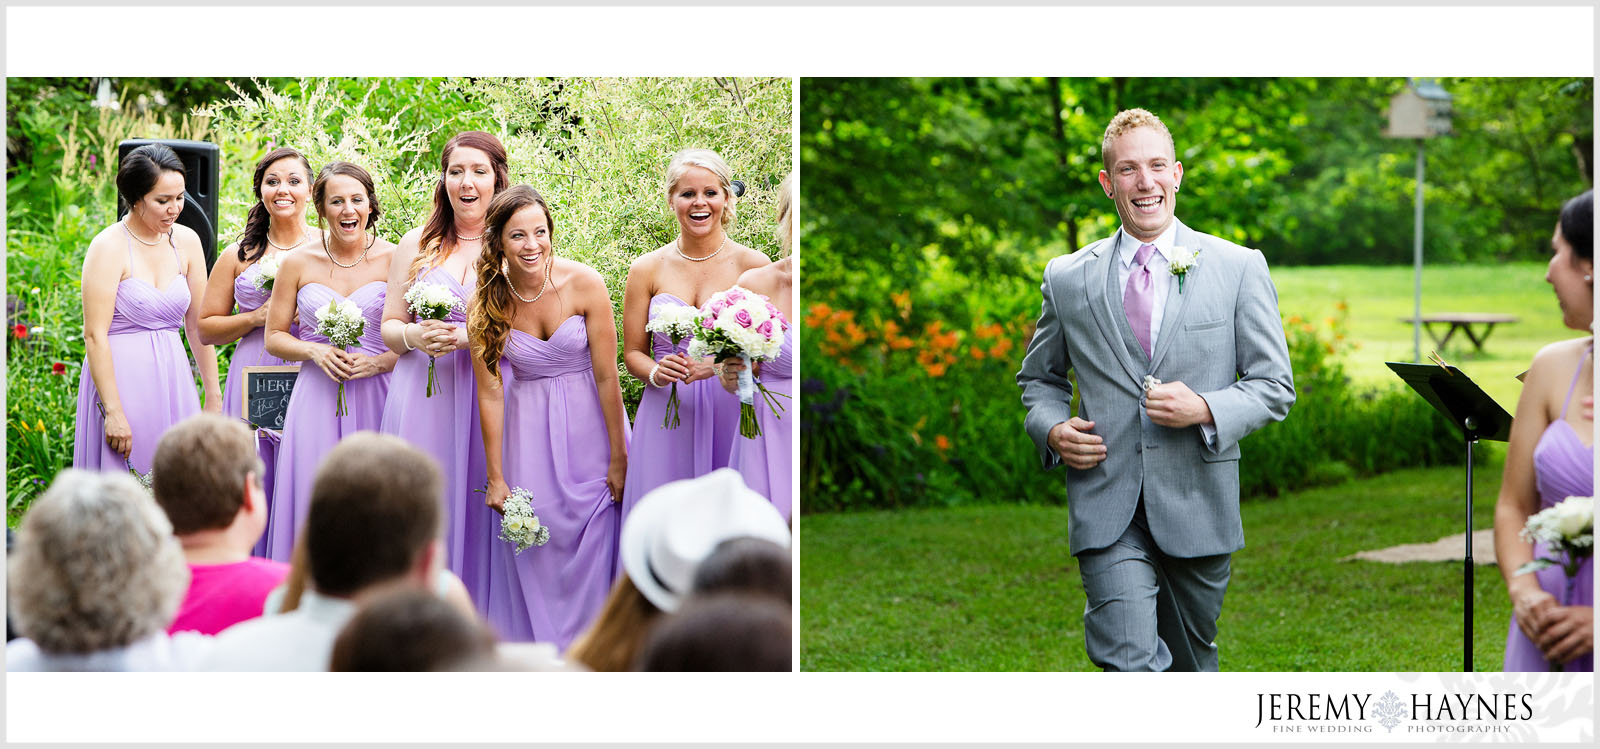 real-moments-at-wedding-ceremony